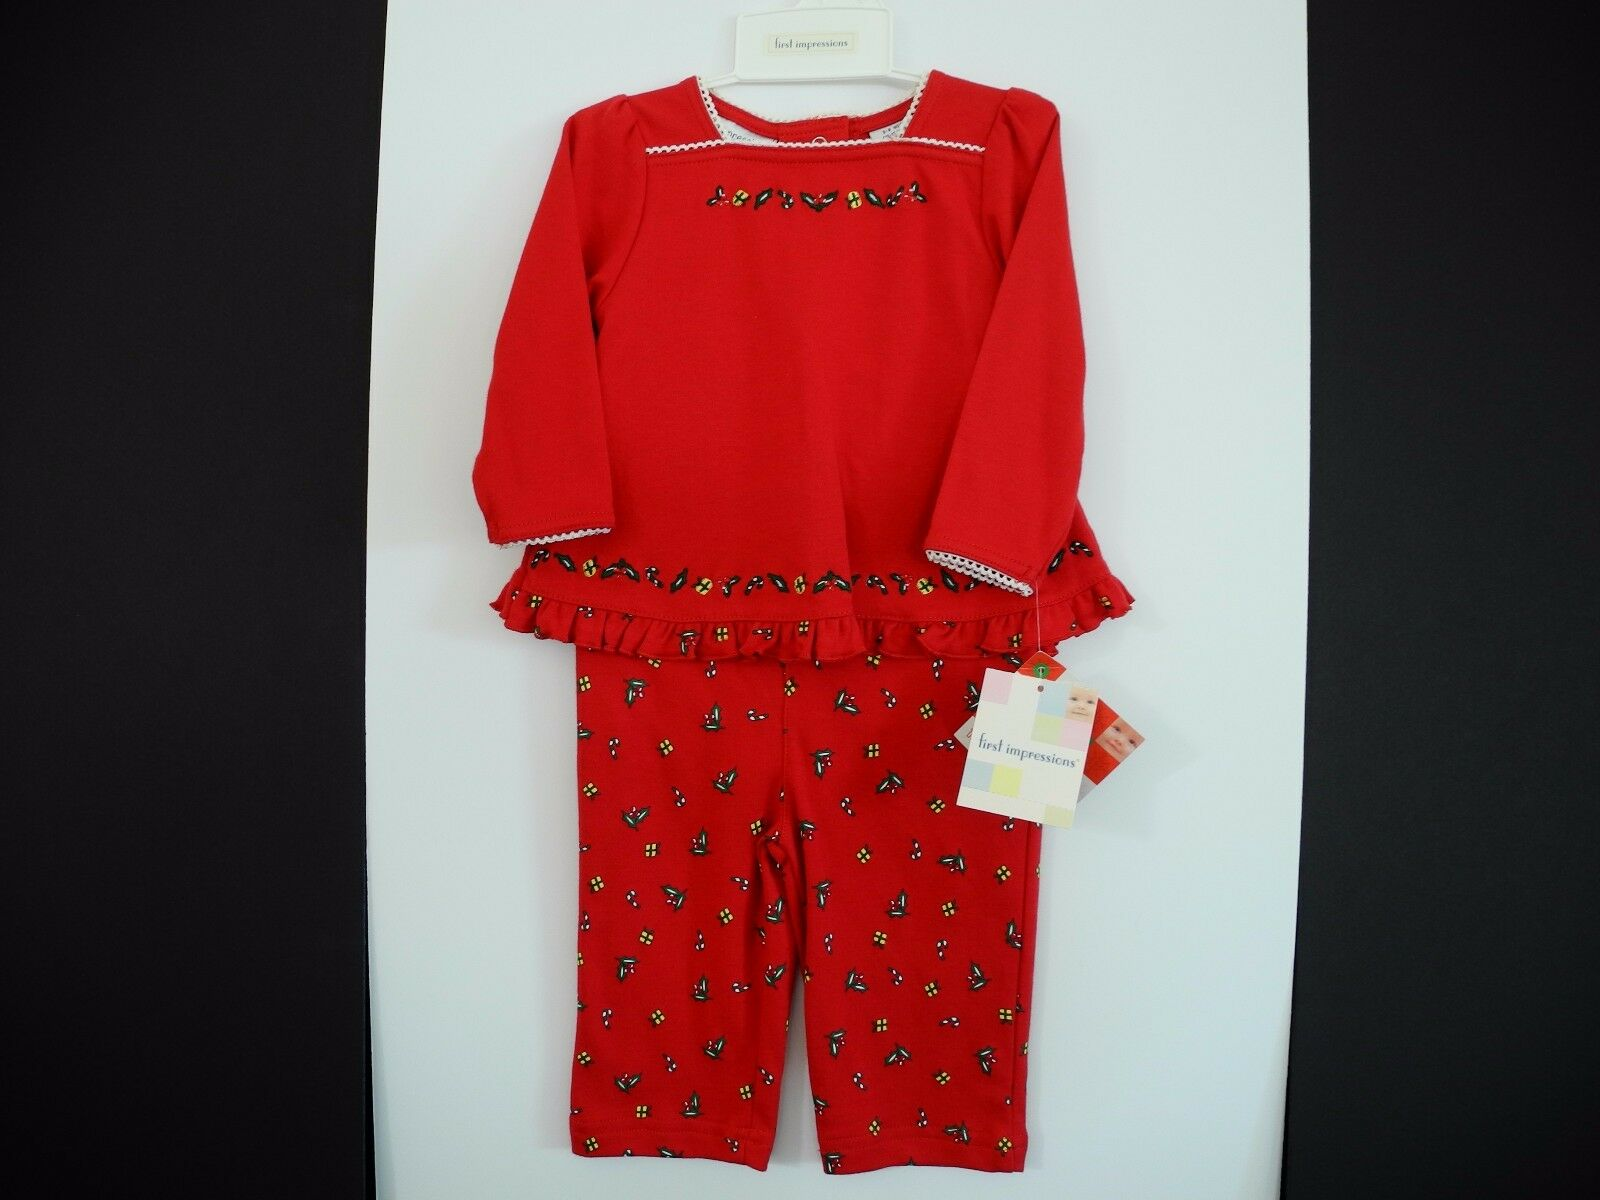 892df5bde5a1c First Impressions Christmas Baby Girl 2 Pc. Red Tunic & Leggings Set 3- 6  Months | eBay